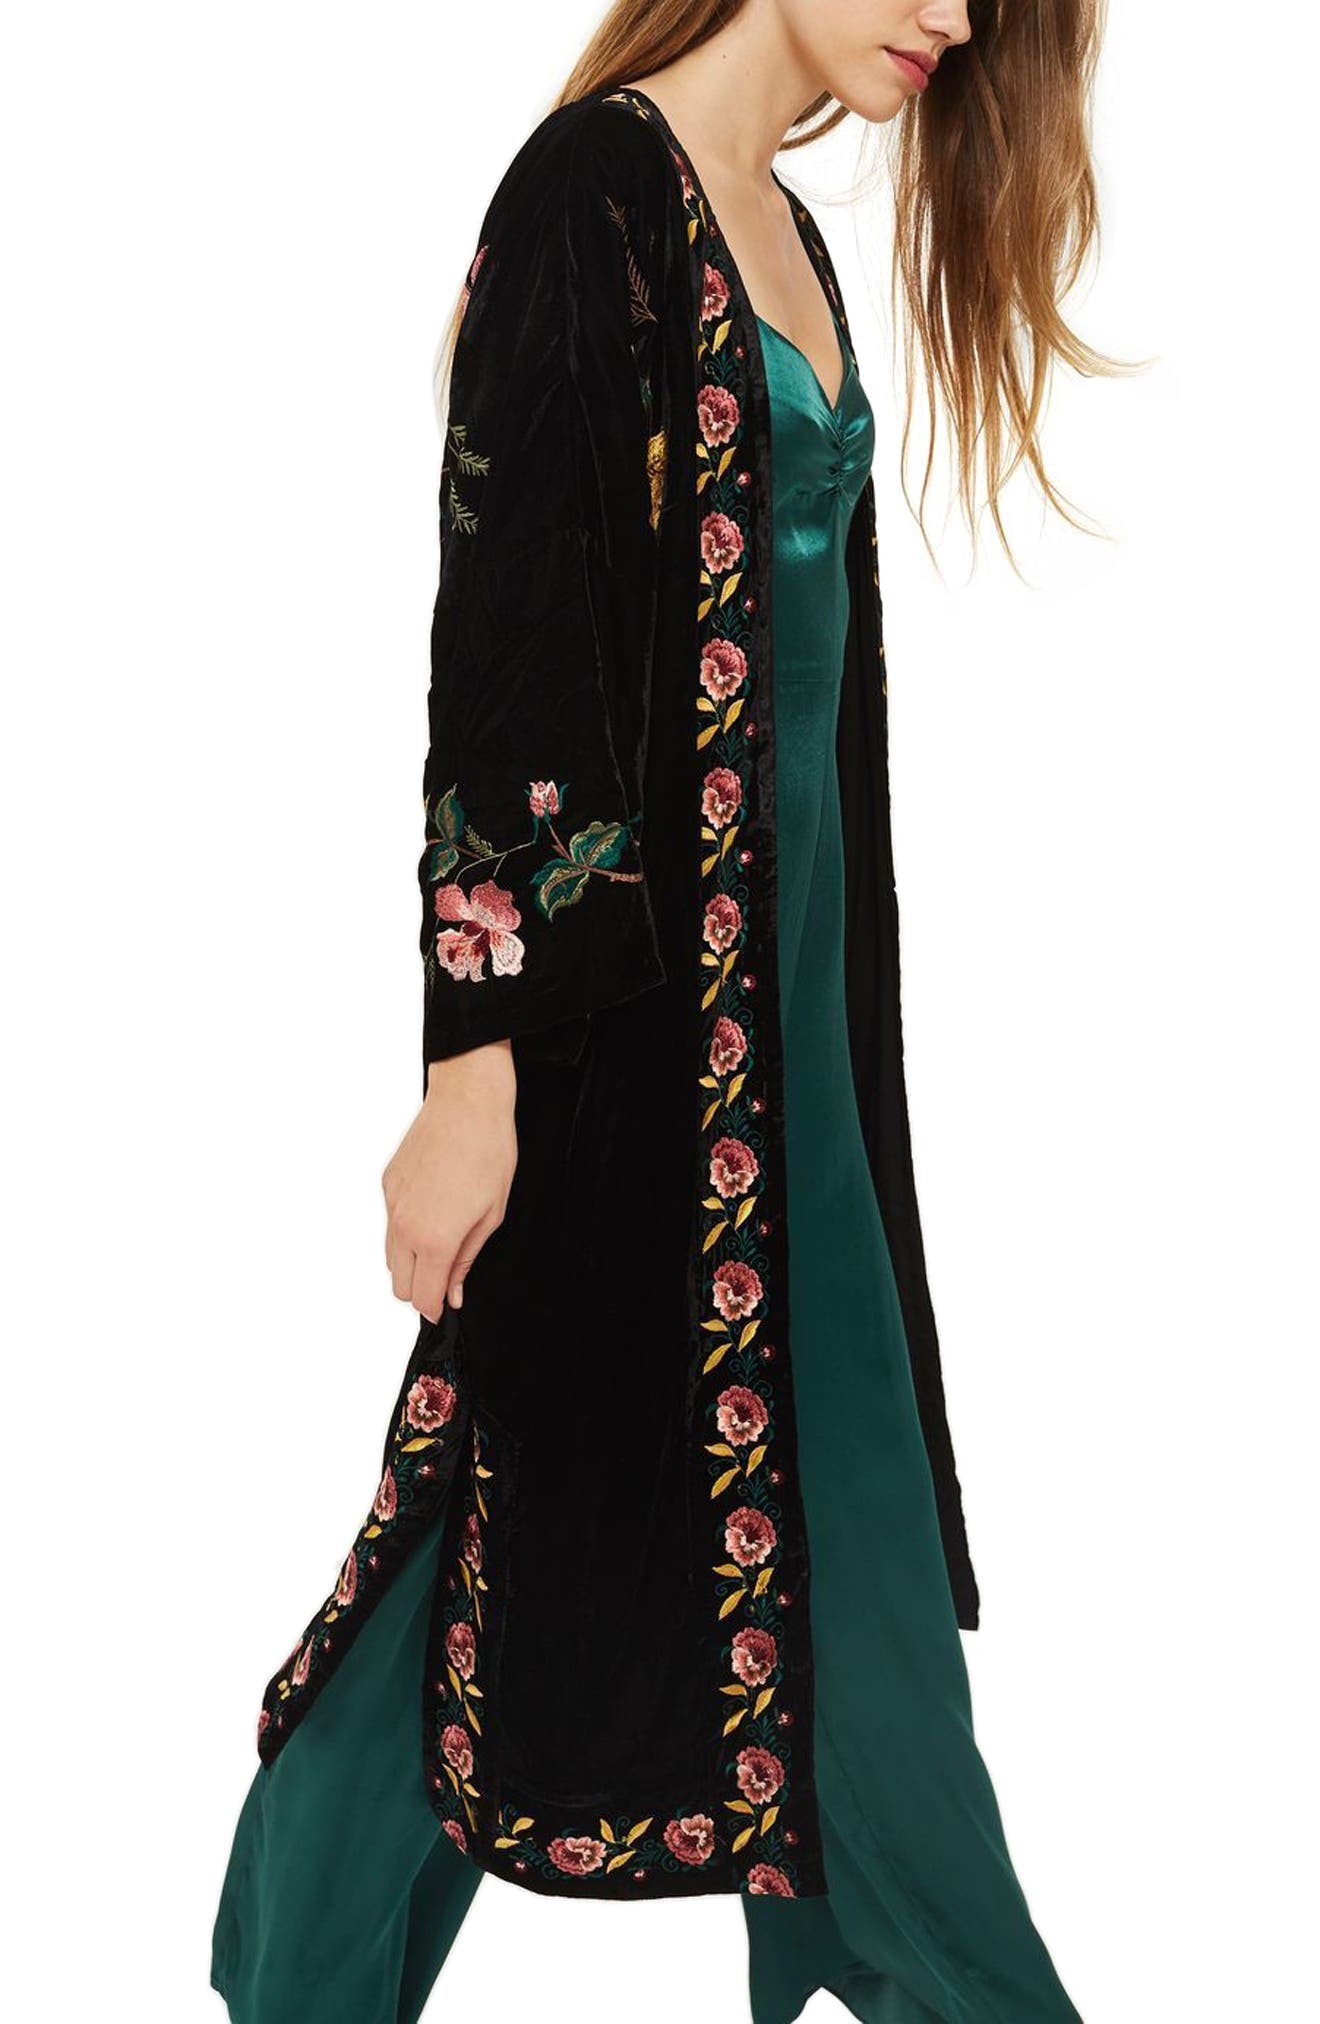 Floral Embroidered Velvet Kimono,                             Alternate thumbnail 4, color,                             Black Multi